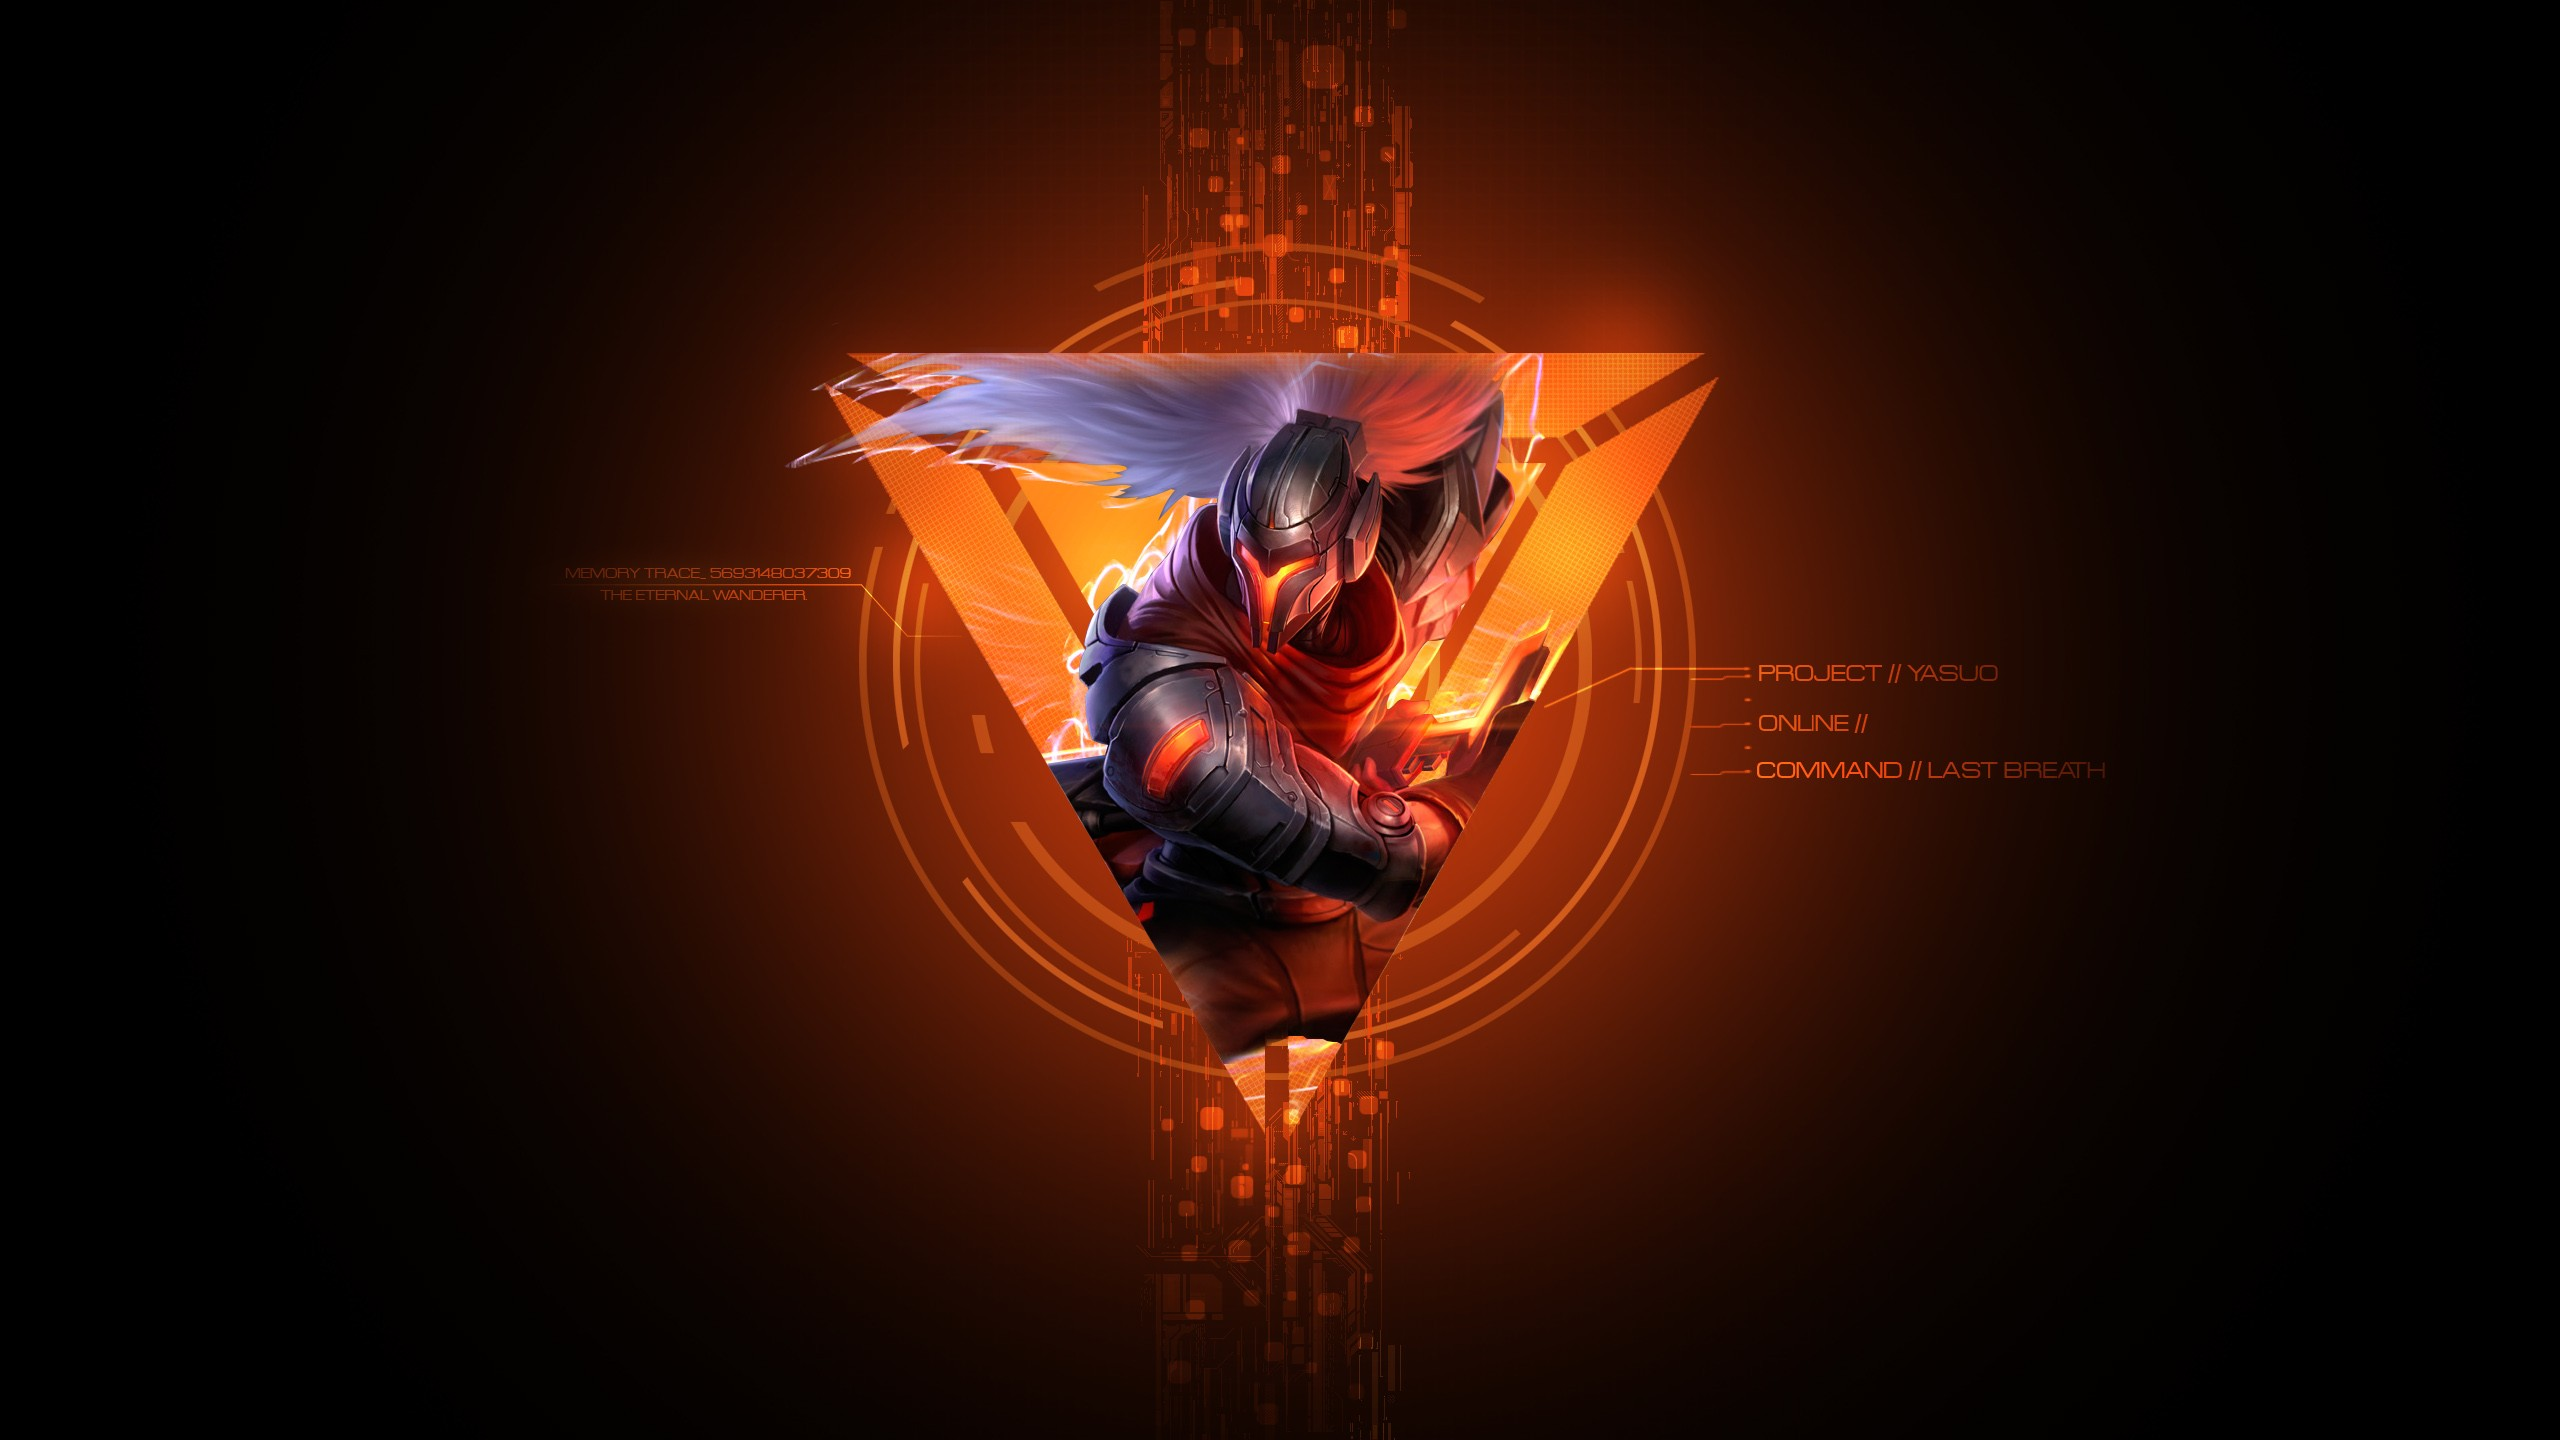 League Of Legends Yasuo Wallpaper 1920x1080 Fitrini S Wallpaper